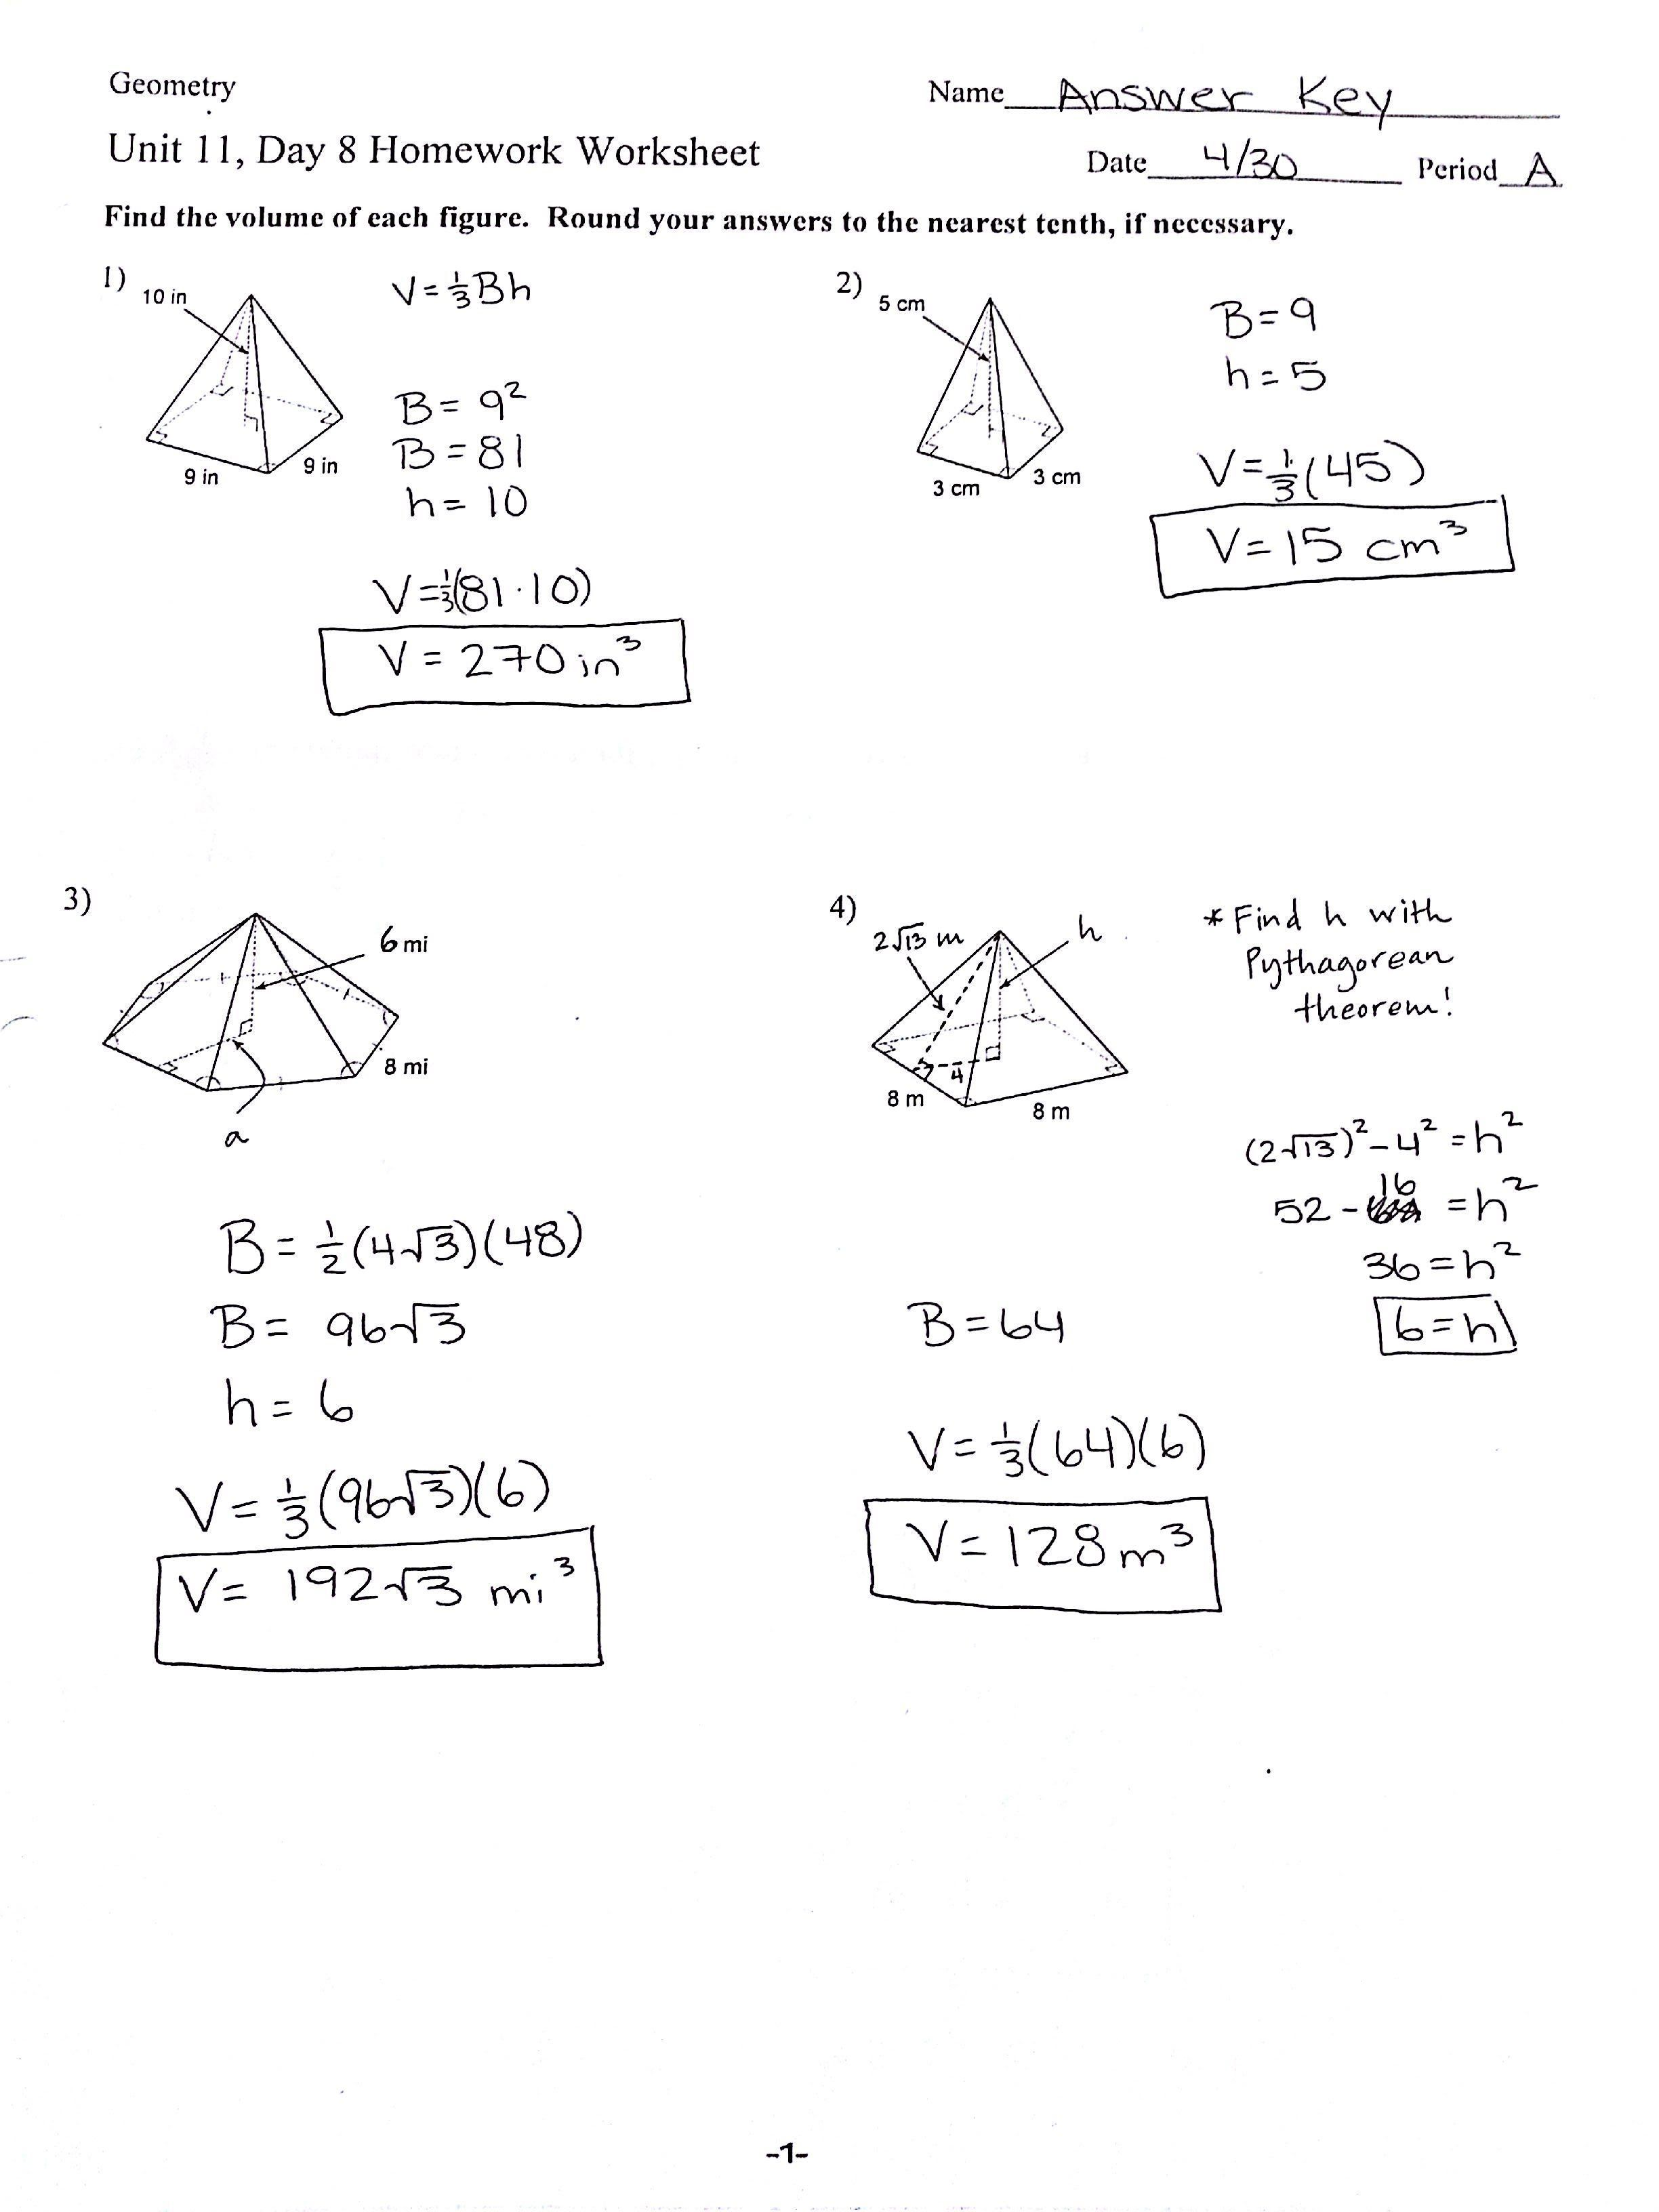 37 Simple Balancing Equations Worksheet Ideas S